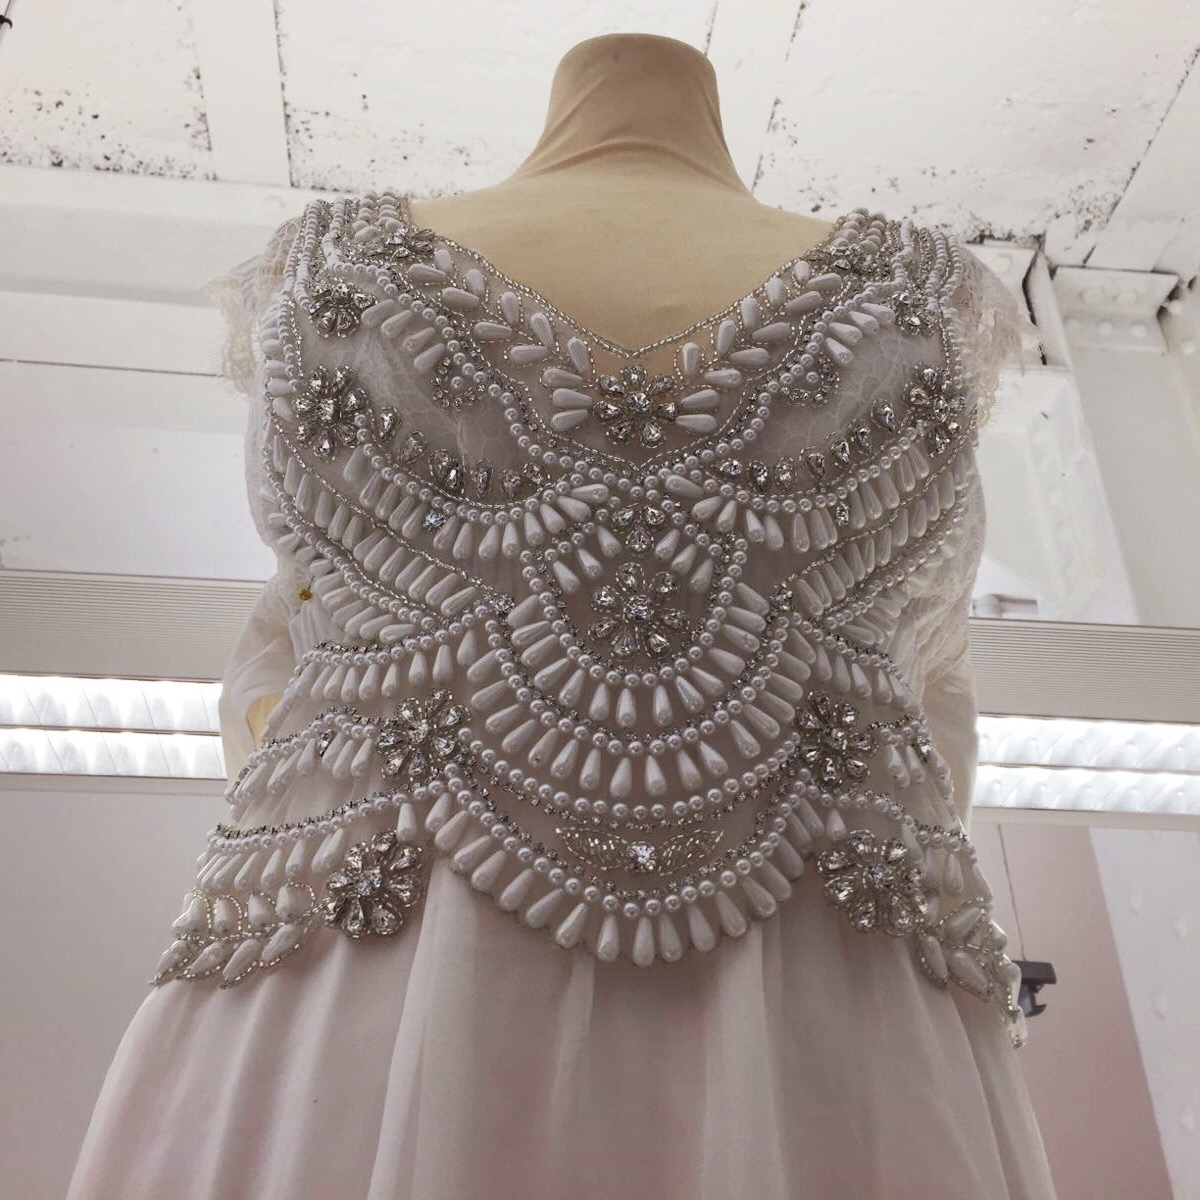 Couture Wedding Gown Alterations 2016